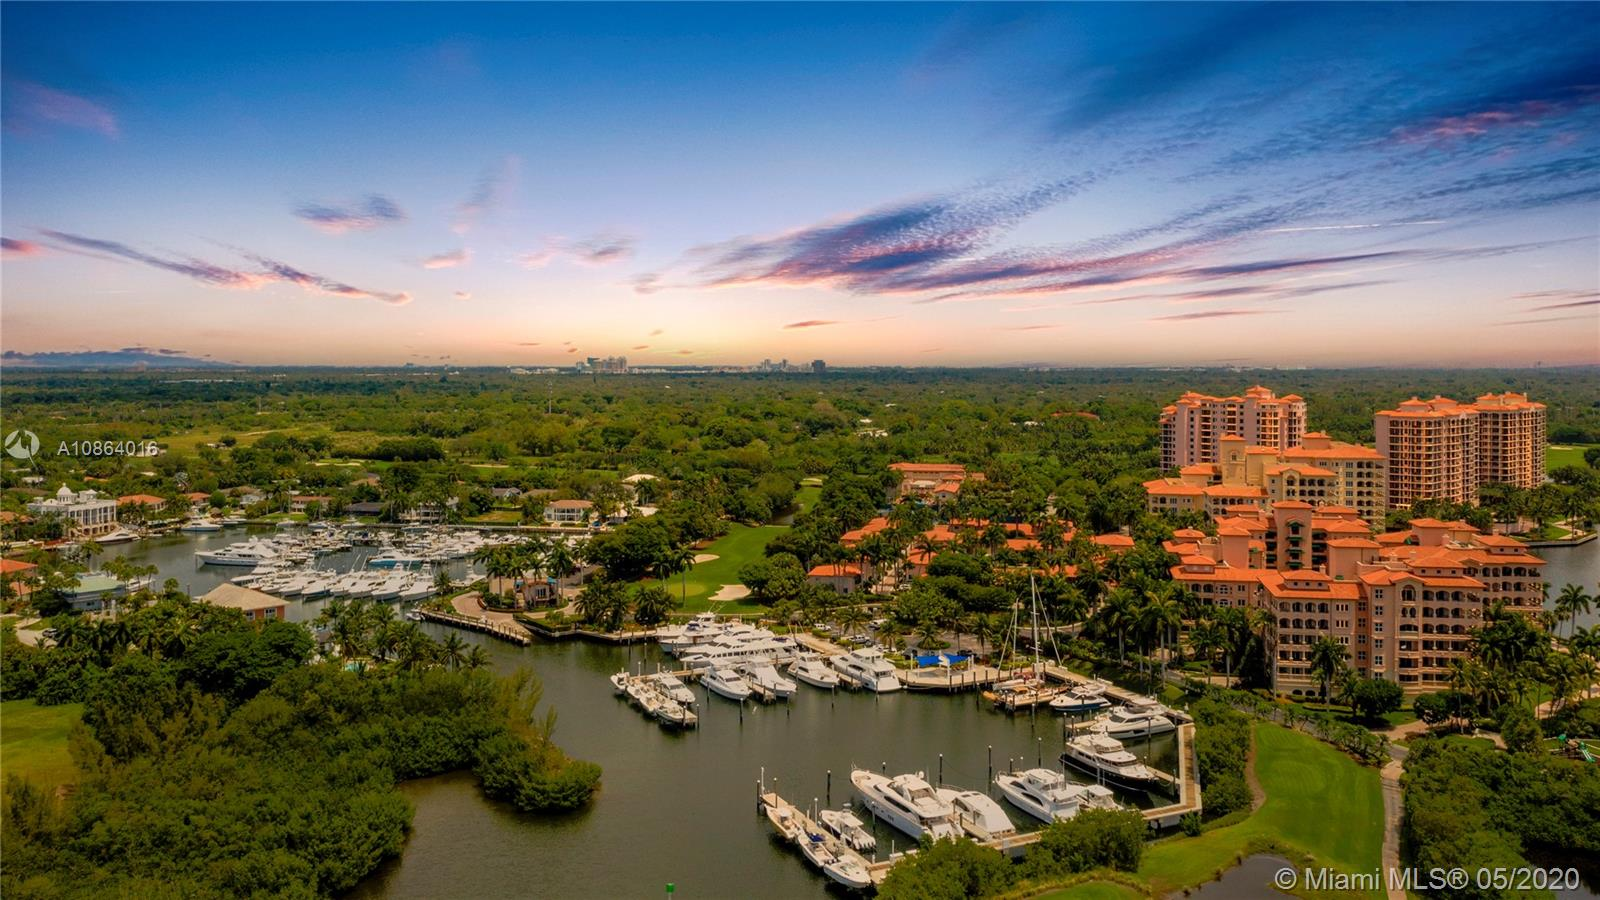 13637 Deering Bay Dr # 211, Coral Gables, Florida 33158, 3 Bedrooms Bedrooms, ,4 BathroomsBathrooms,Residential,For Sale,13637 Deering Bay Dr # 211,A10864016